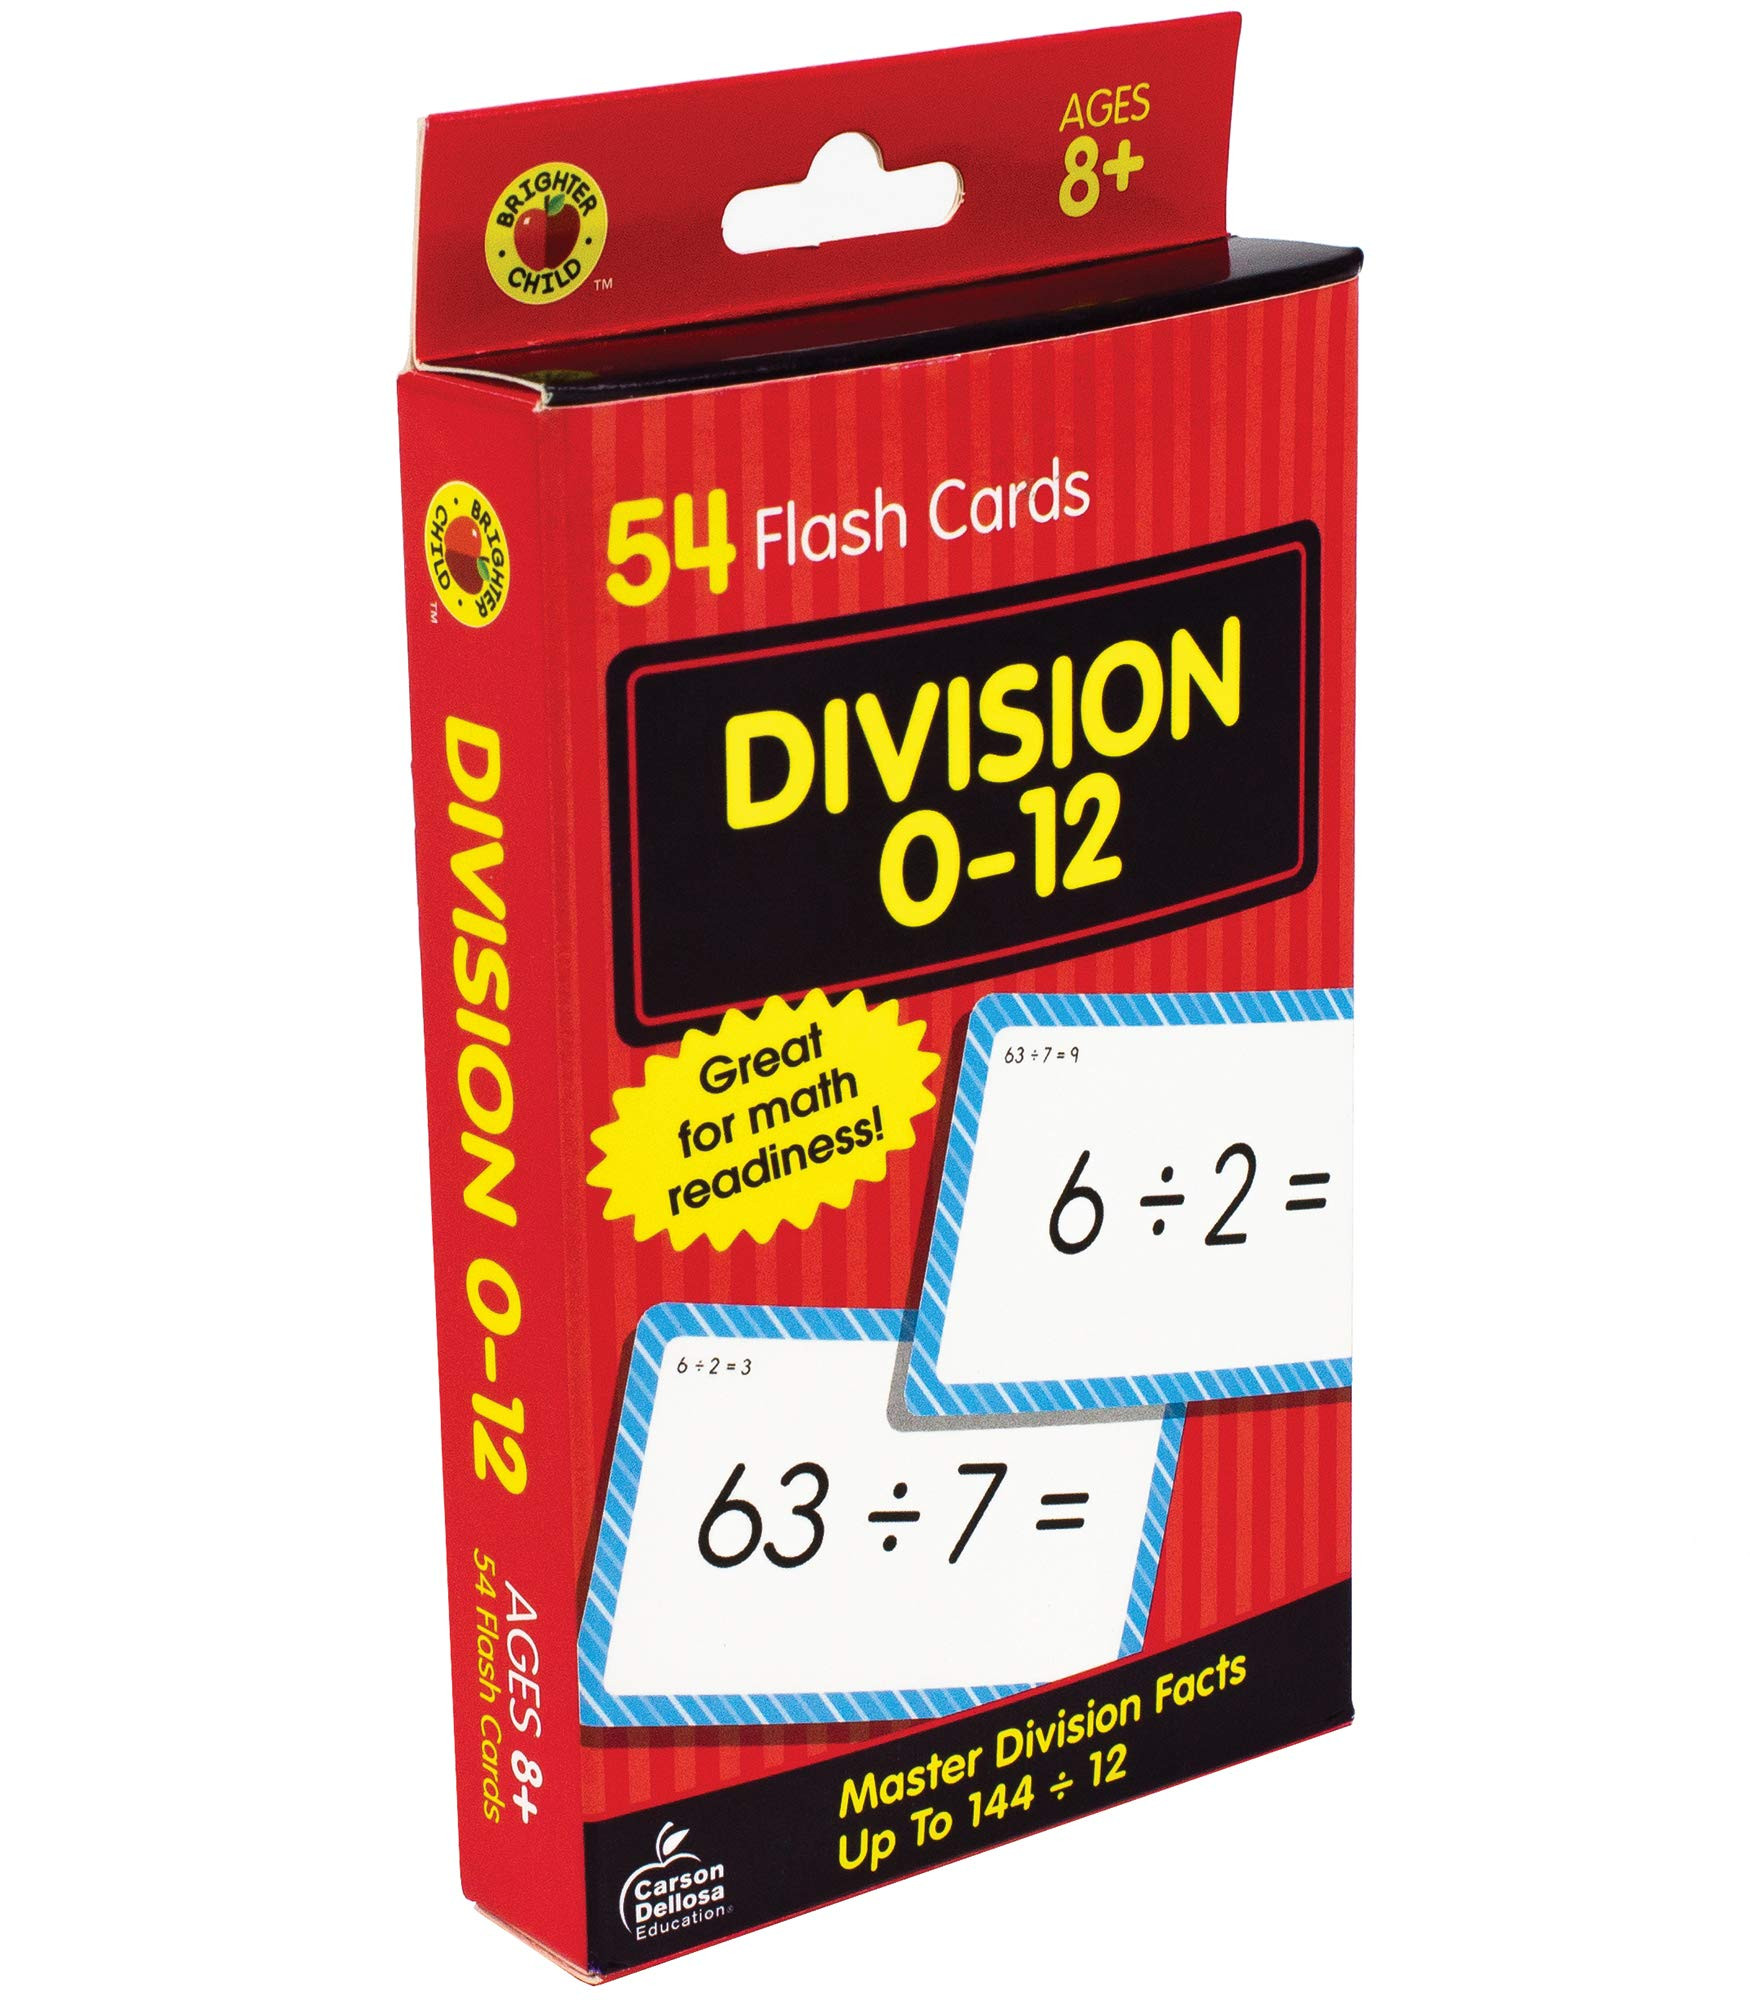 hight resolution of 4 Free Math Worksheets Third Grade 3 Division Division Facts 1 to 12 -  apocalomegaproductions.com